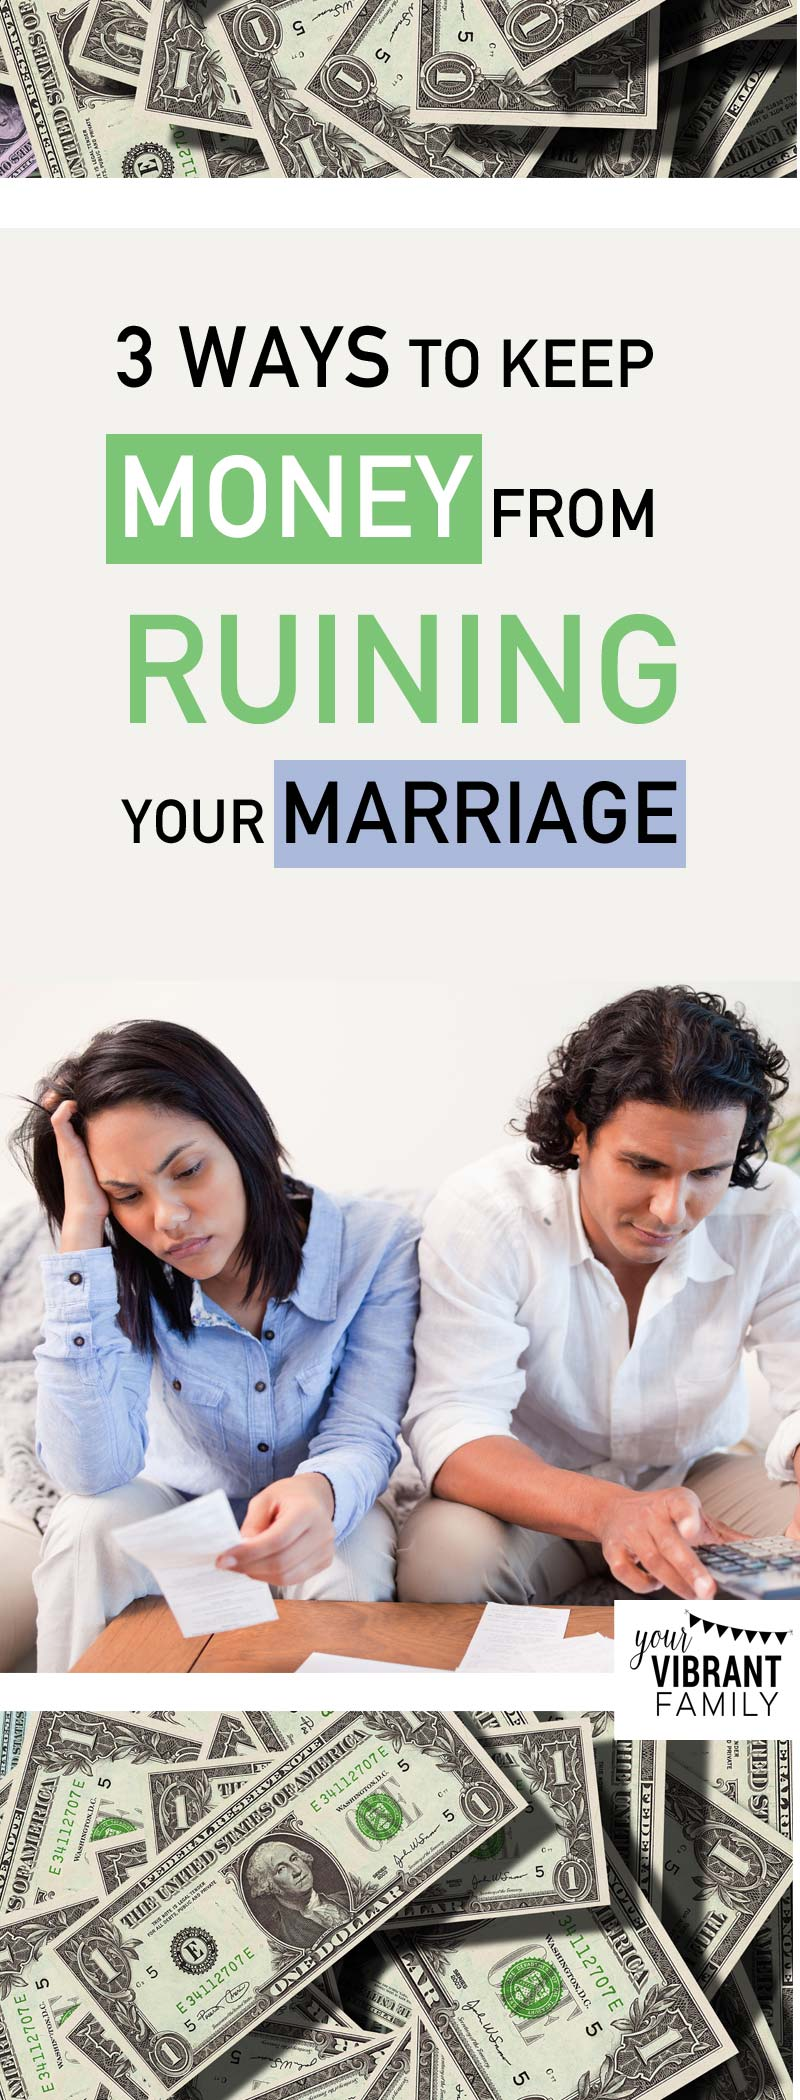 In marriage, money issues are one of the biggest conflicts! Here's how to keep money from ruining your marriage. #2 might surprise you… great marriage advice here from the experts!